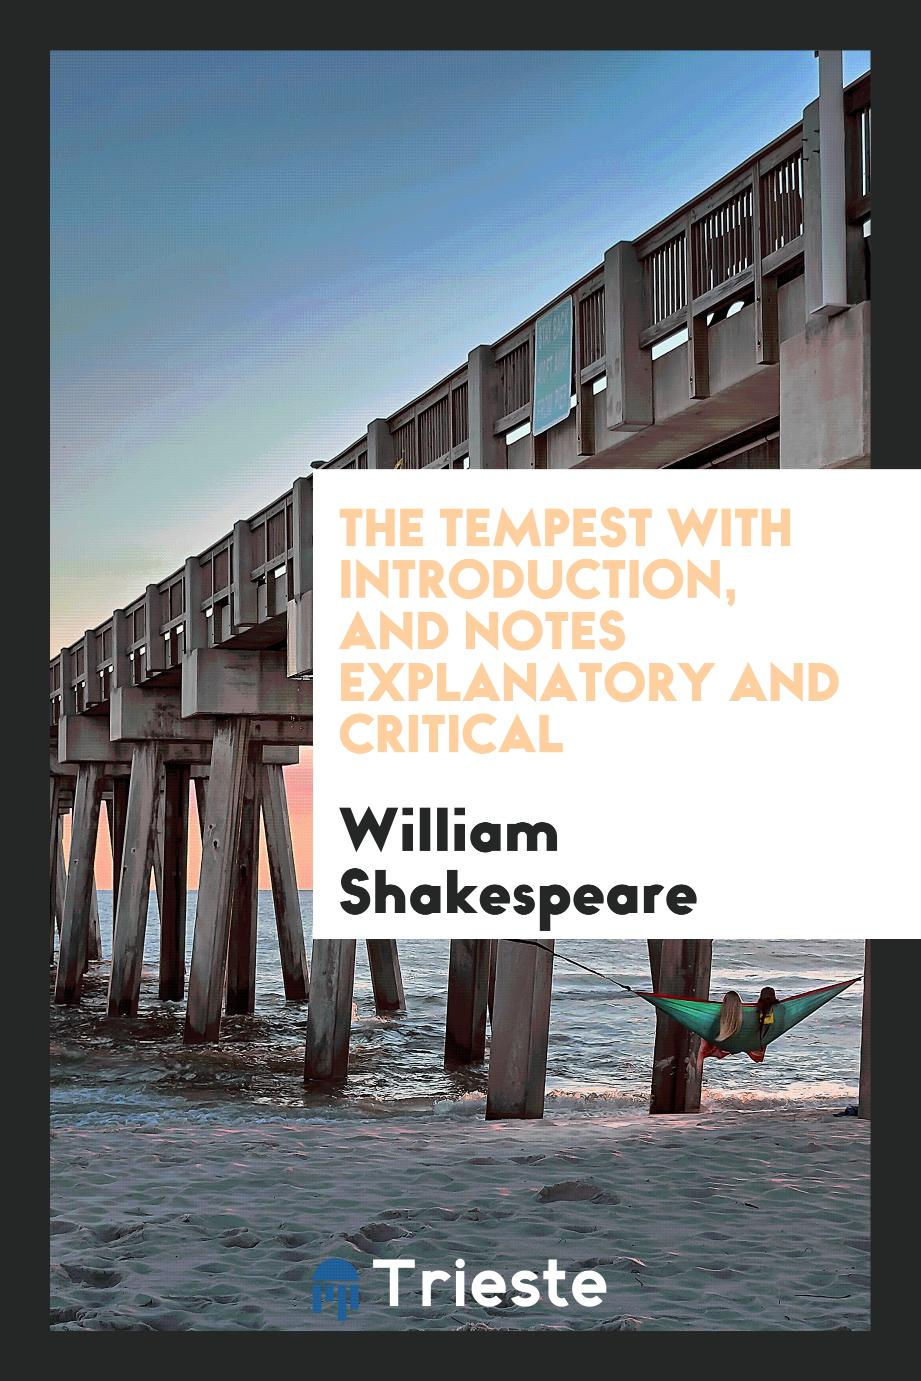 The Tempest with Introduction, and Notes Explanatory and Critical